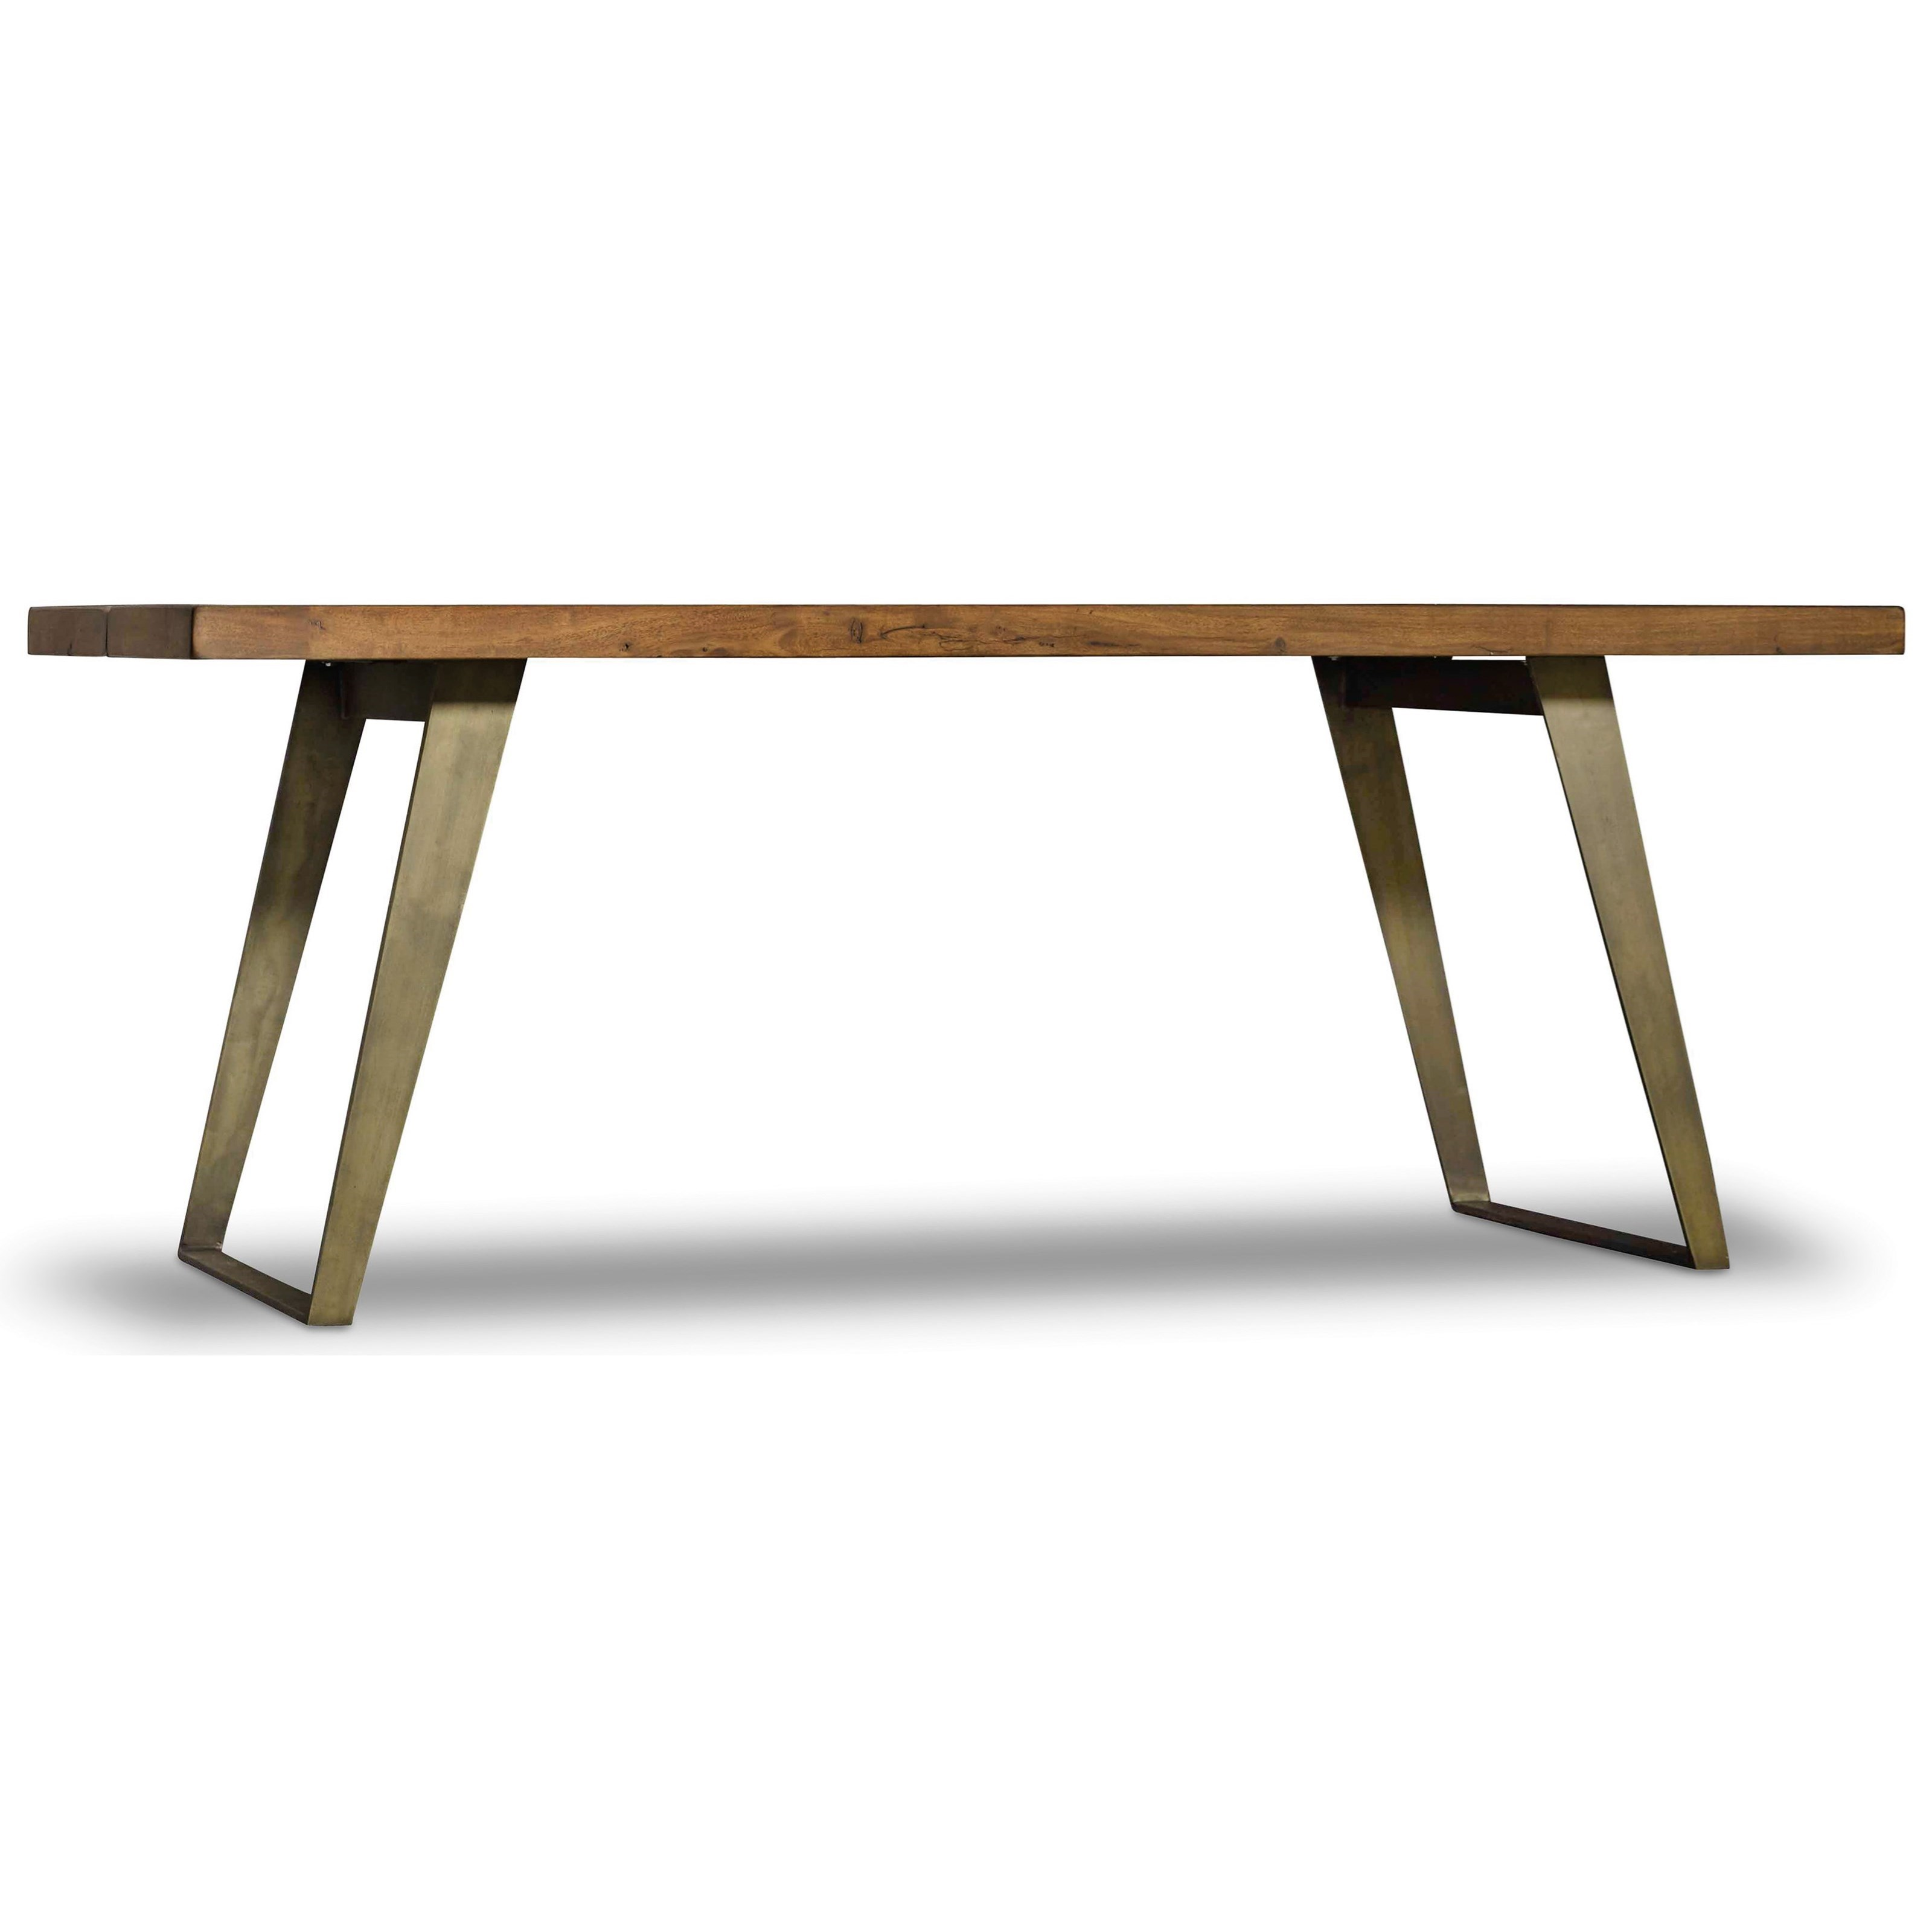 Hooker Furniture Transcend Contemporary Dining Table - Item Number: 7000-75203